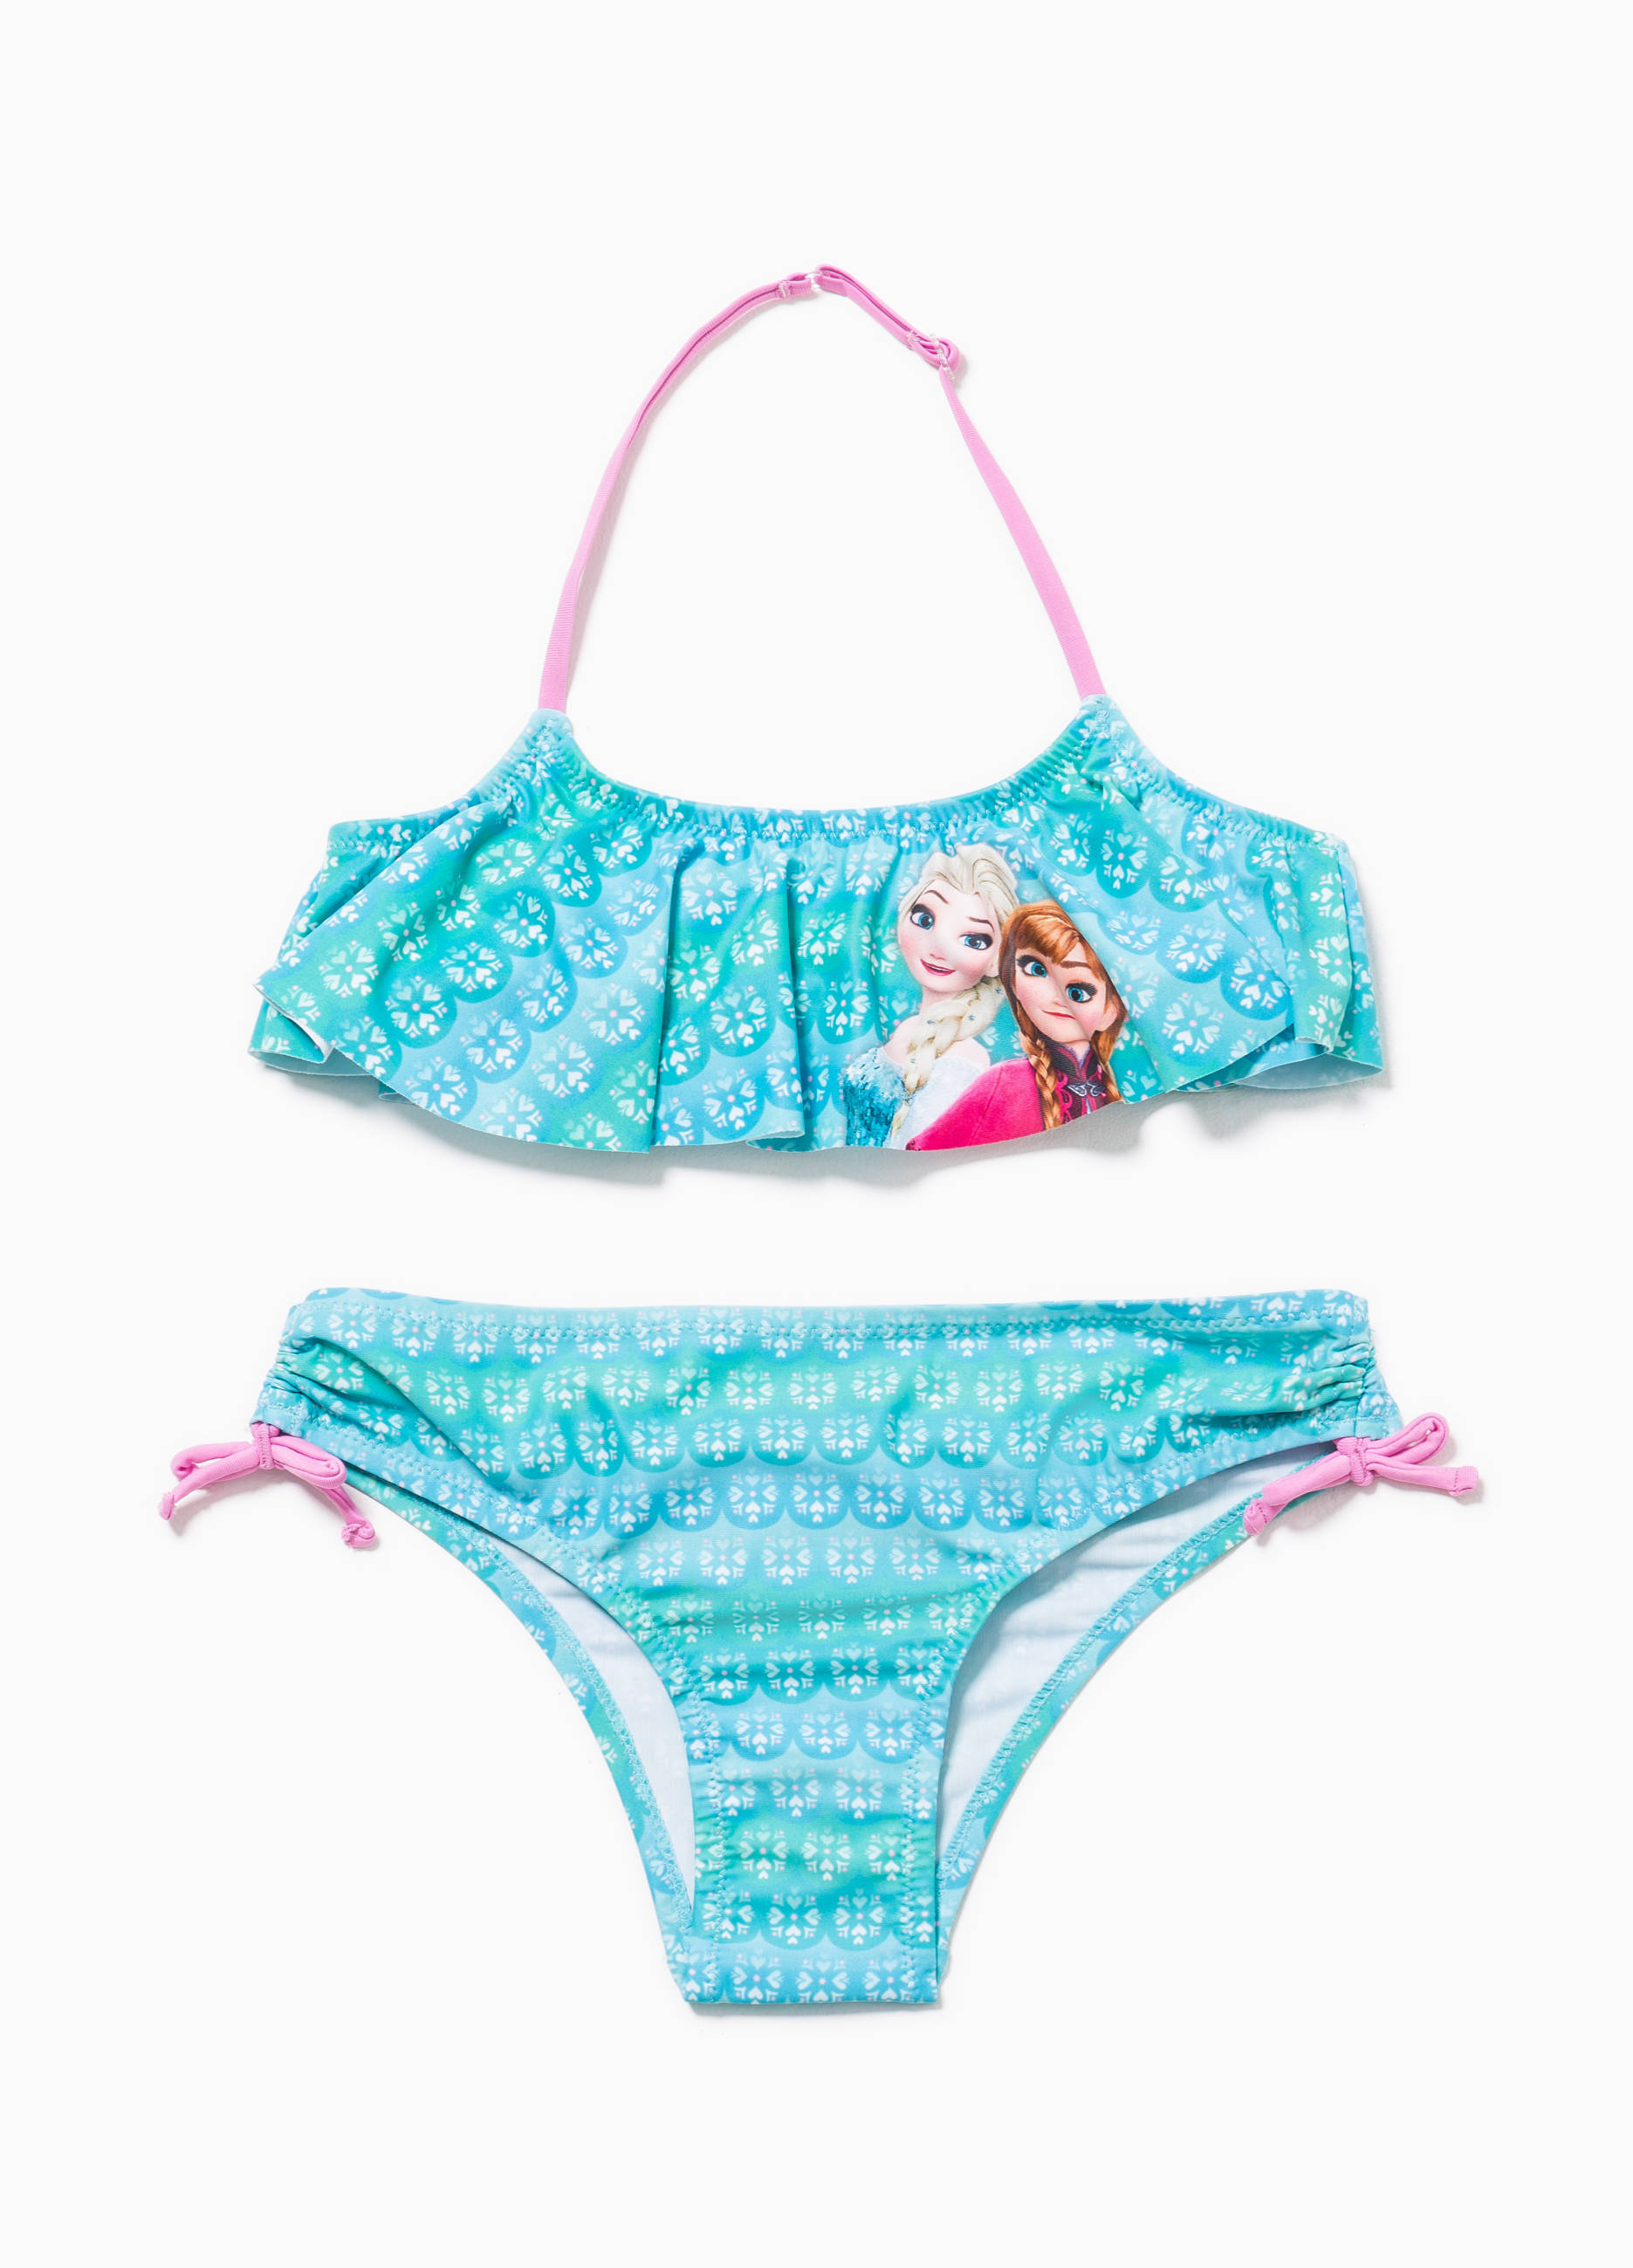 869f5d8898eac3 Stretch bikini with Frozen pattern | OVS